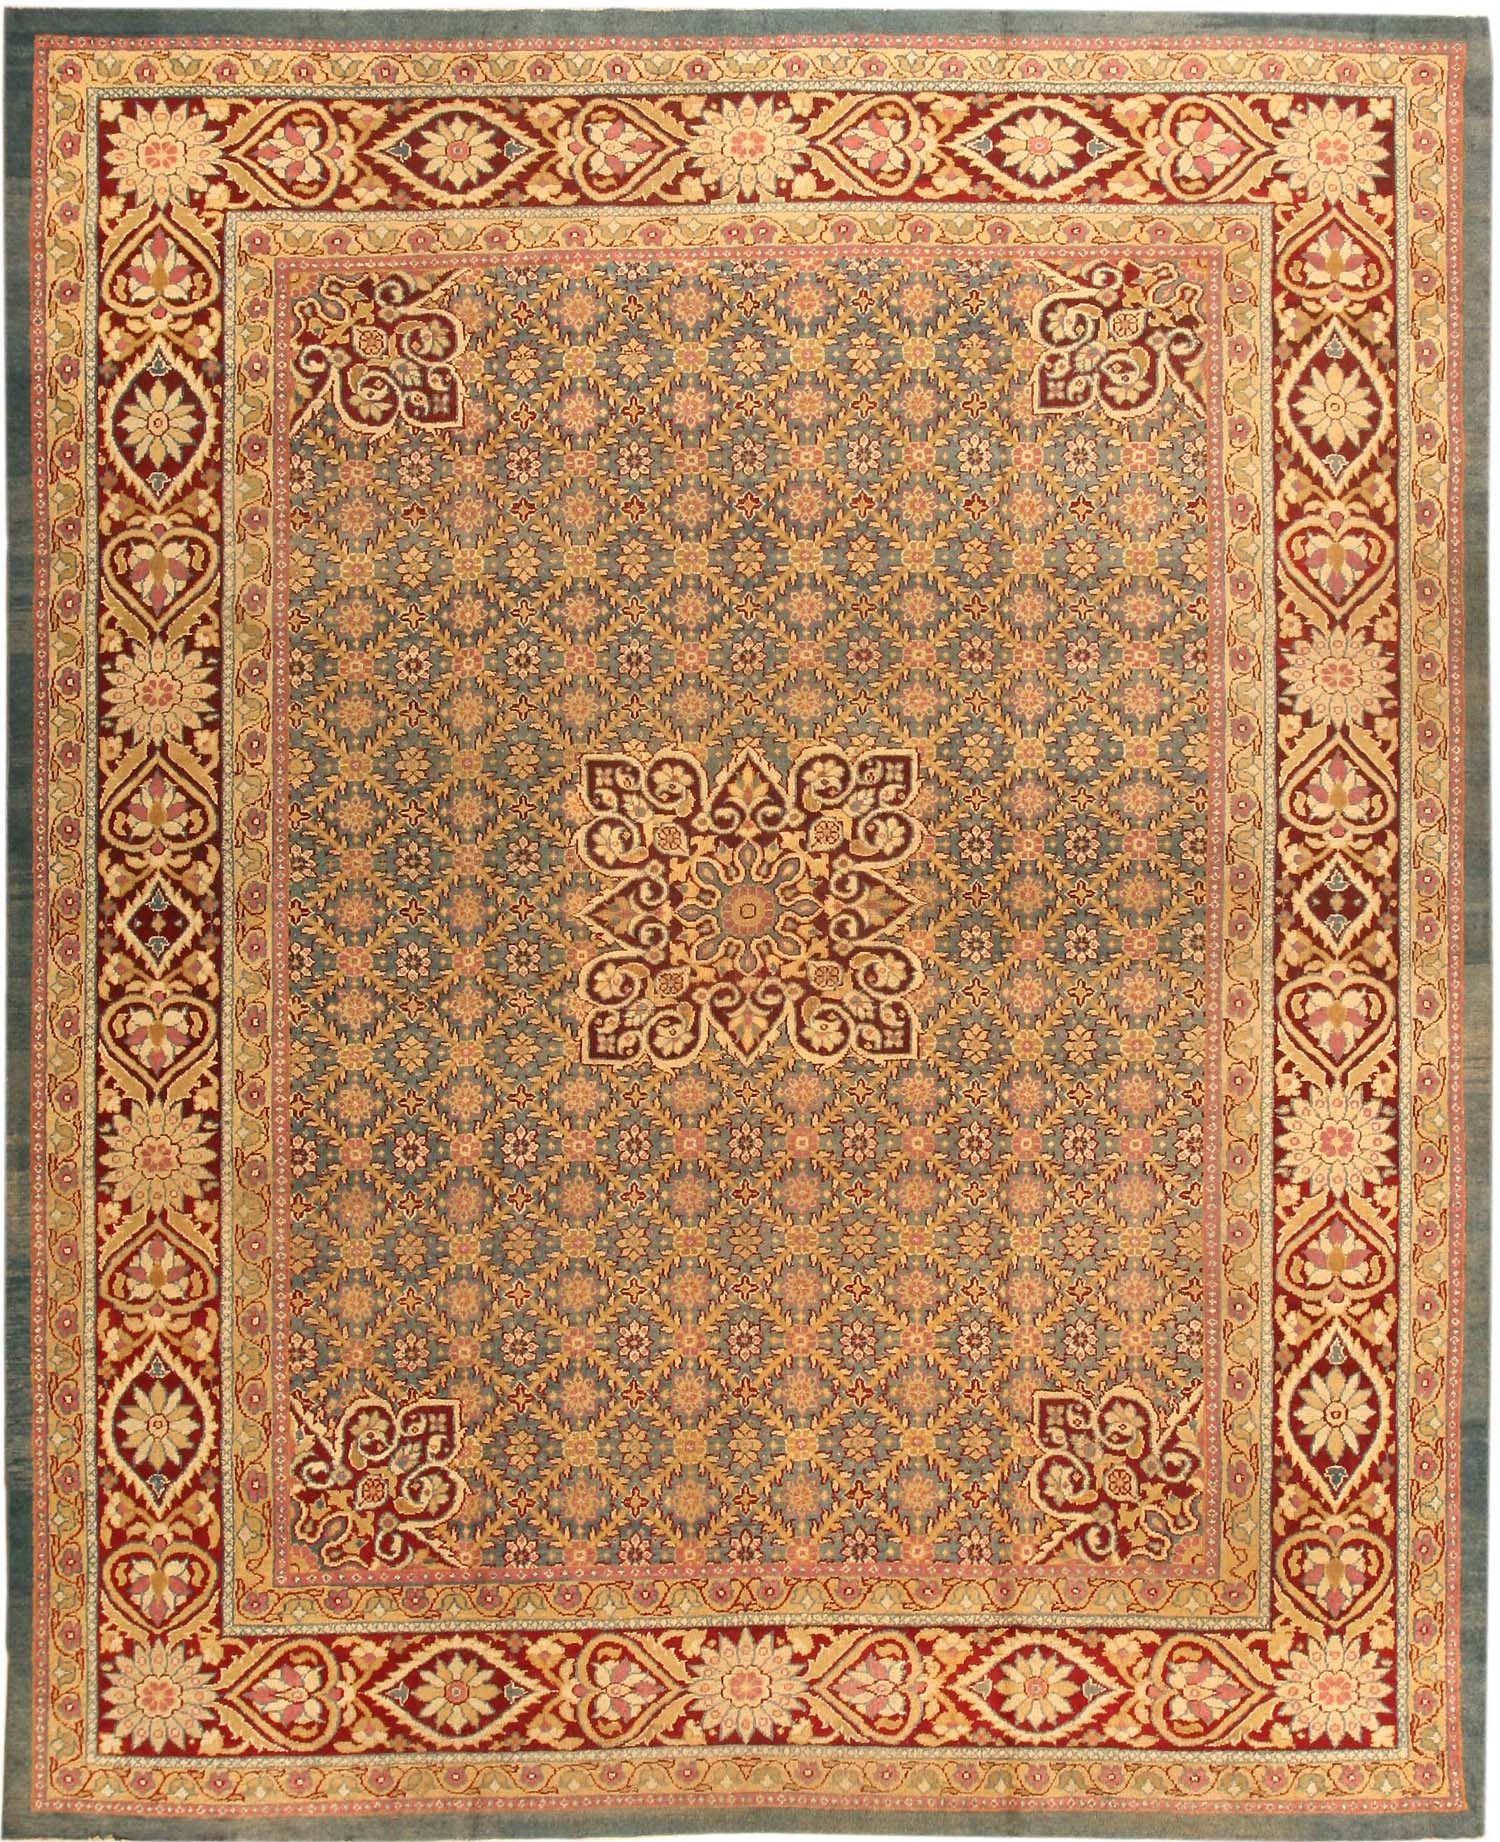 Arts And Crafts Rugs With Exciting Indian Agra Rug Design: Antique Agra Oriental Rugs 42144 For Sale